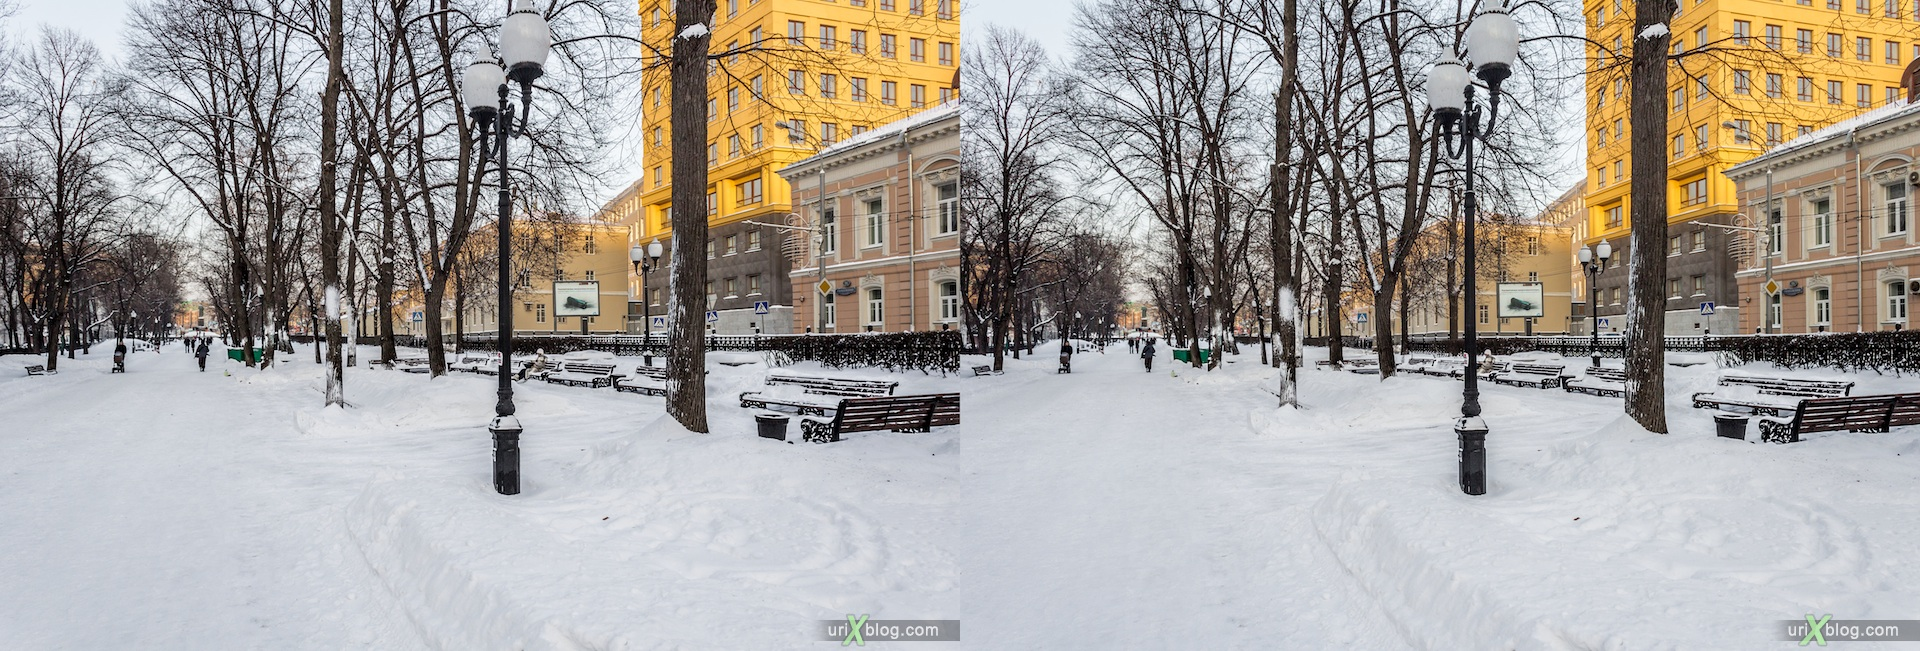 2013, Gogolevskiy Bulvar, Moscow, snow, winter, city, Russia, 3D, stereo pair, cross-eyed, crossview, cross view stereo pair